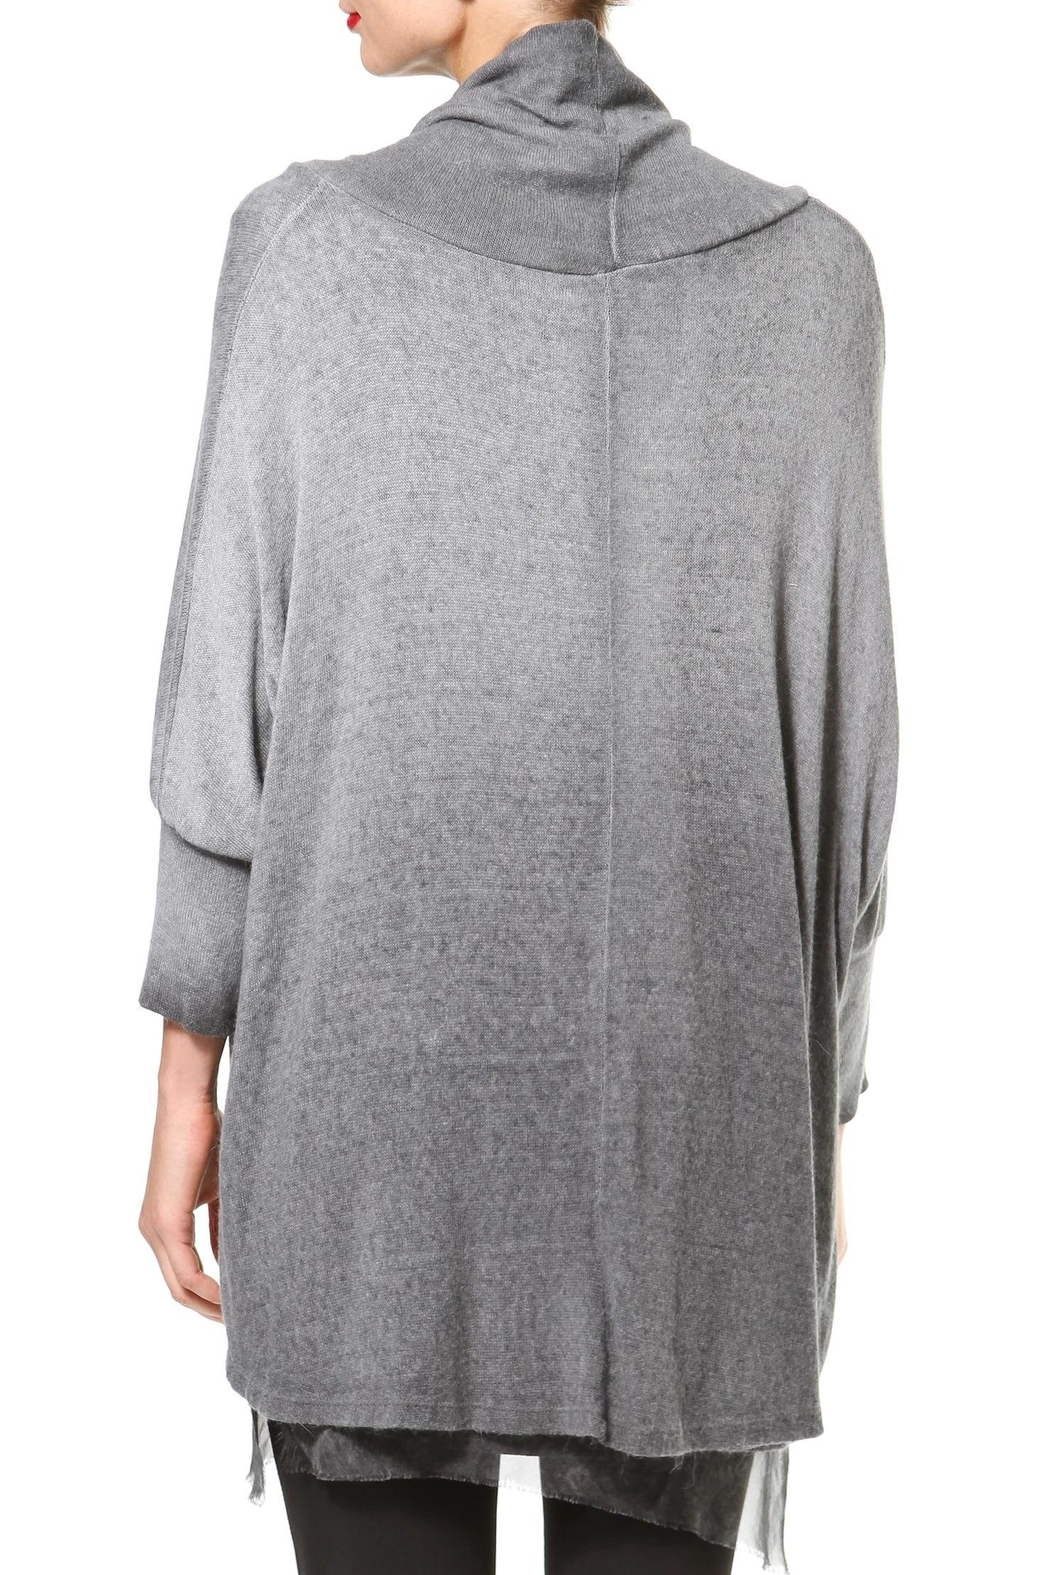 Madonna & Co Textured Tunic - Side Cropped Image